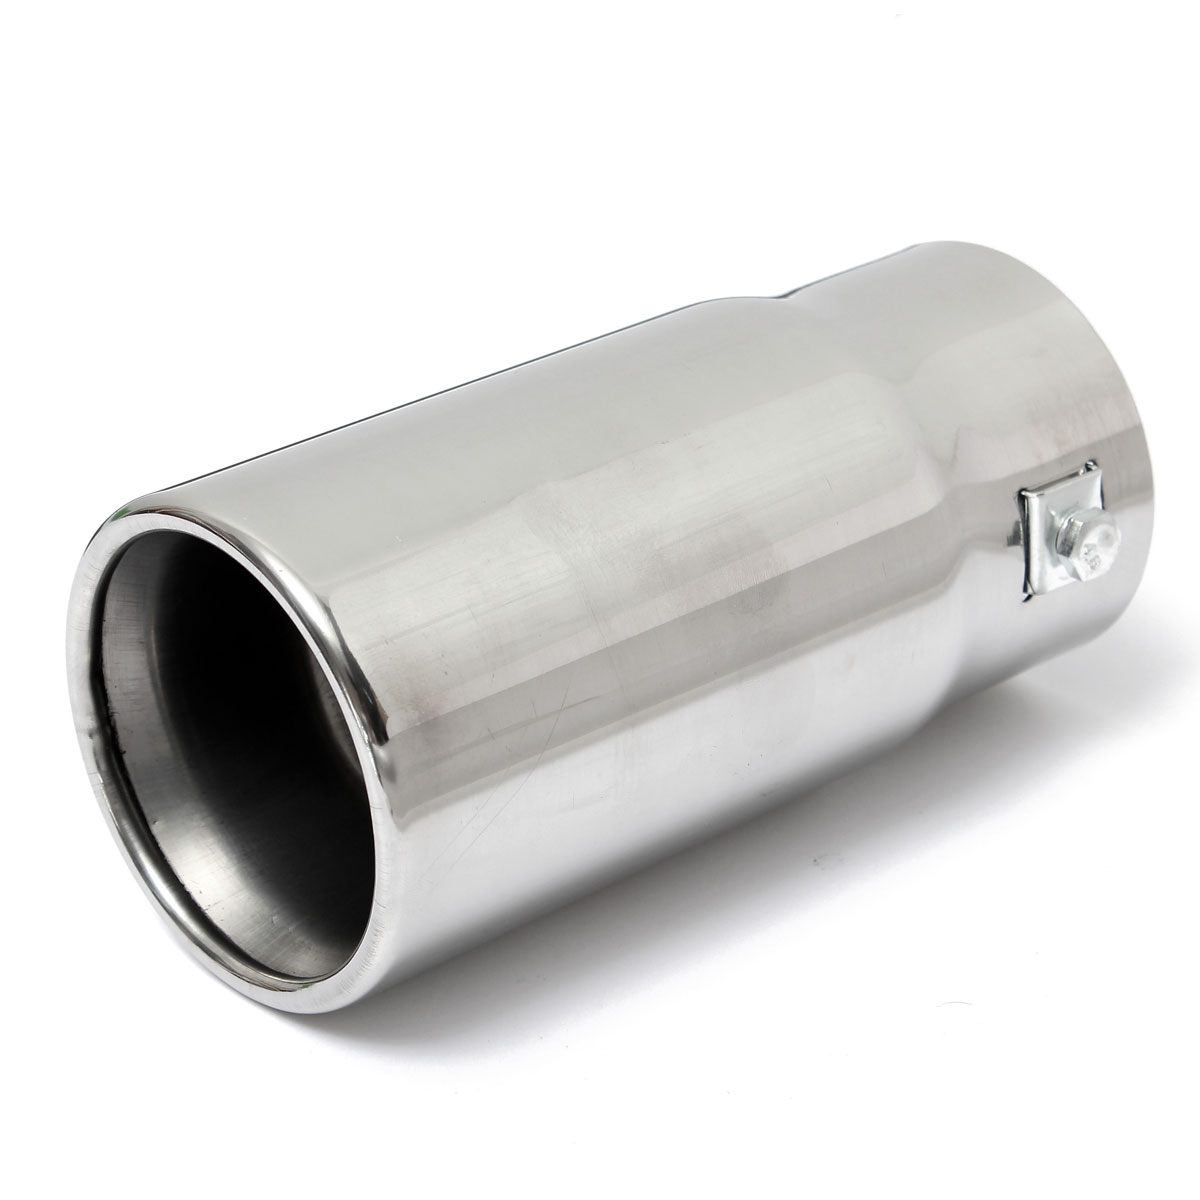 Round Universal Fits Car Stainless Steel Exhaust Tailpipe Tip Muffler Chrome